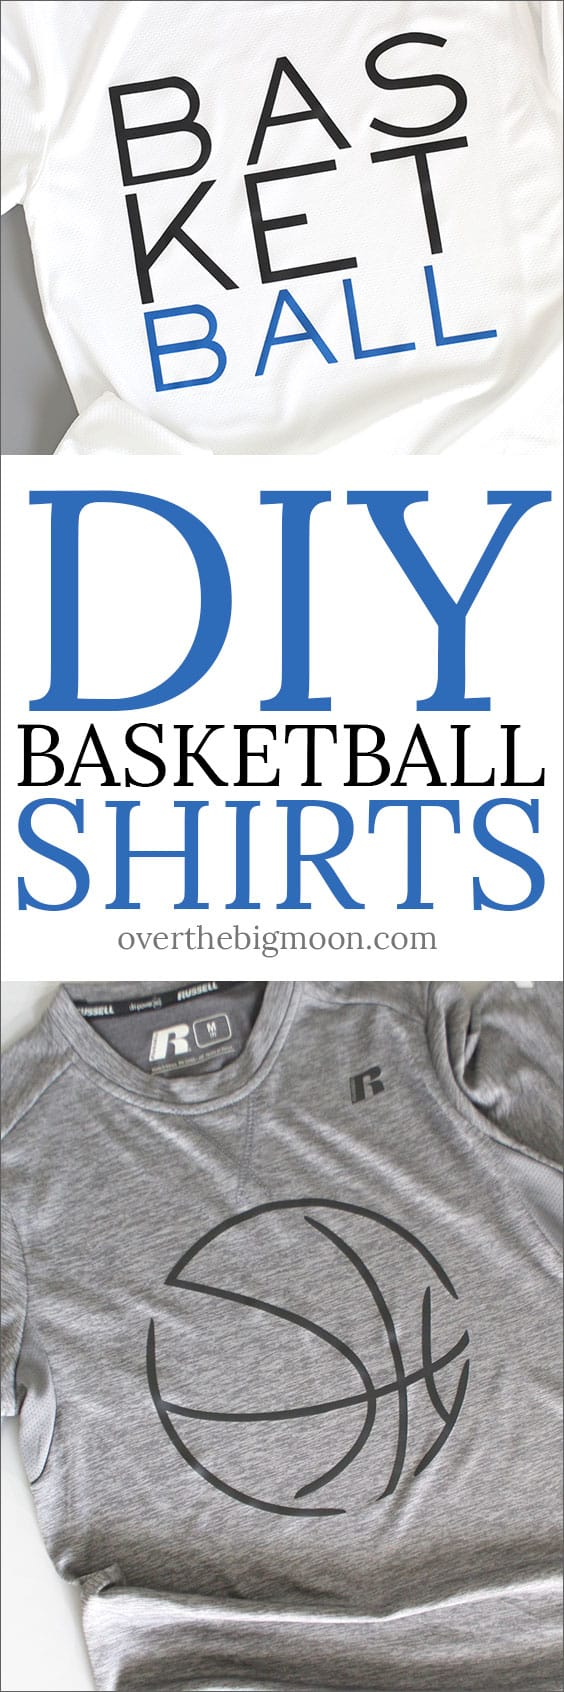 DIY Basketball Shirts for Kids or Adults - using your Cricut! These are so easy to make and for so affordable! From overthebigmoon.com!